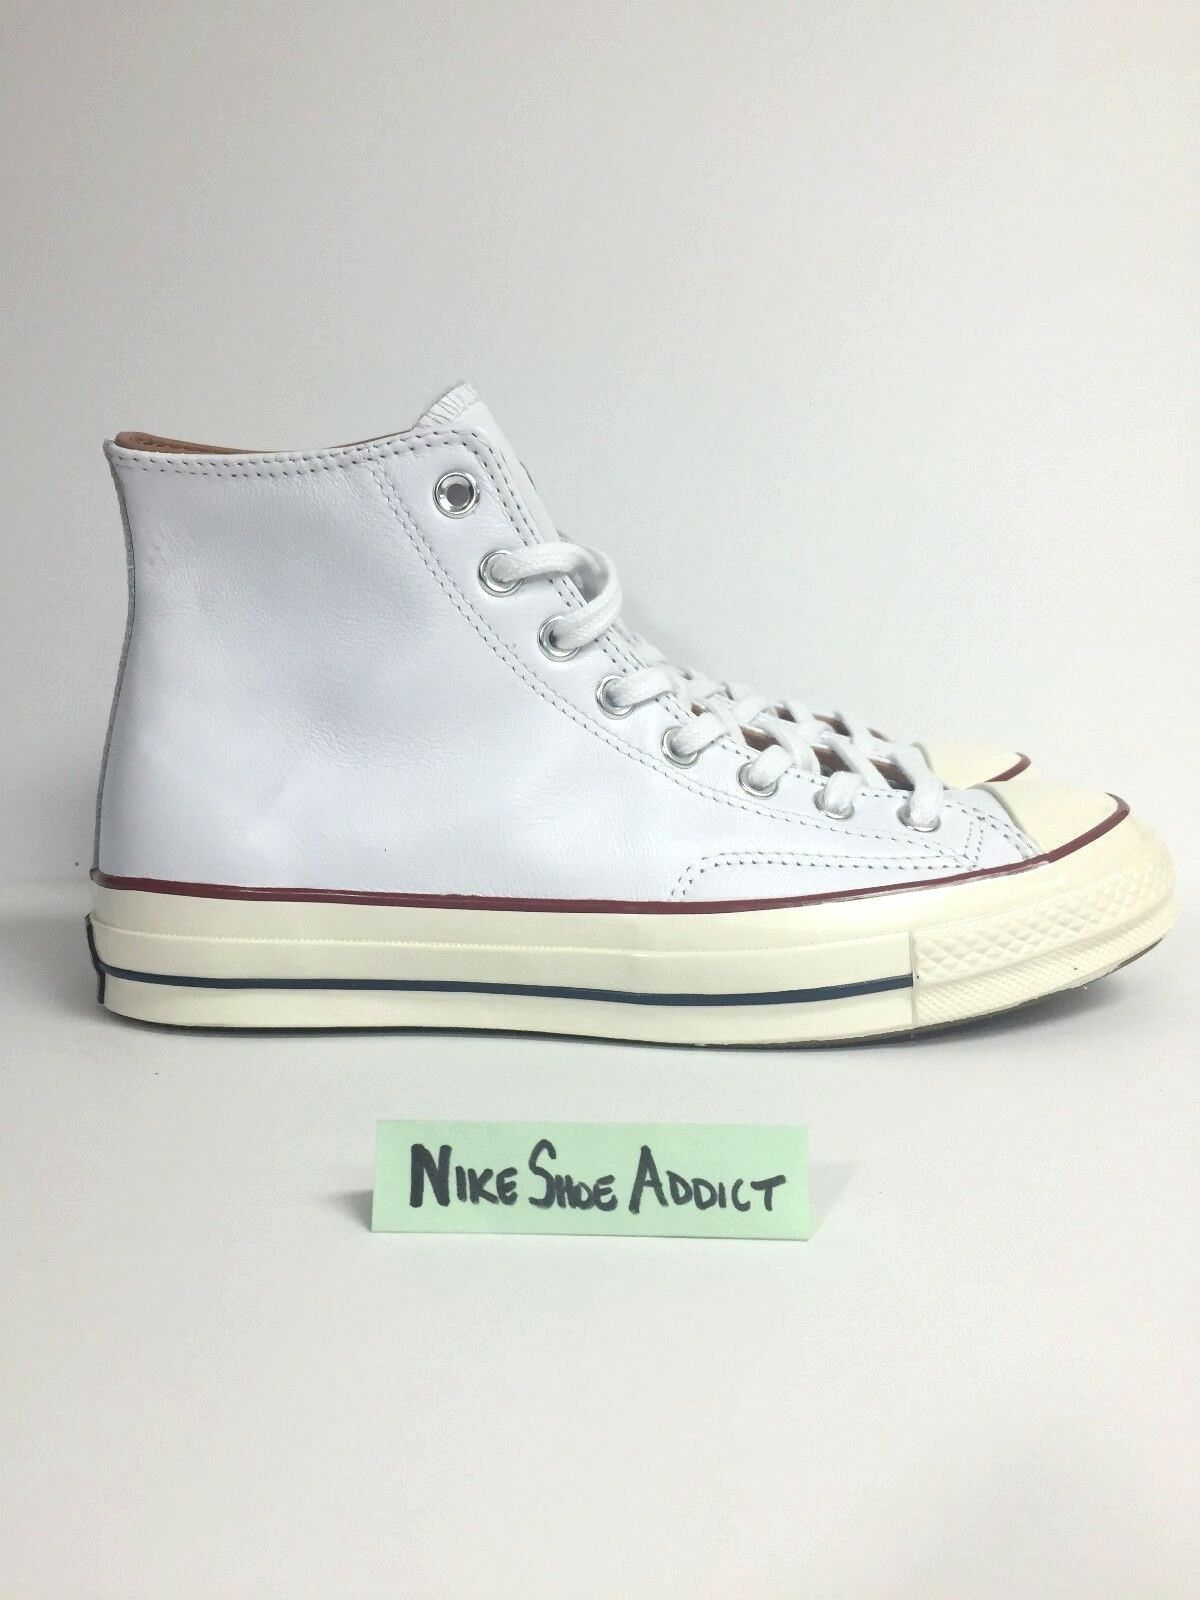 CONVERSE ALL STAR CHUCK TAYLOR HI LEATHER '70 WHITE EGRET 151154C UNISEX NEW